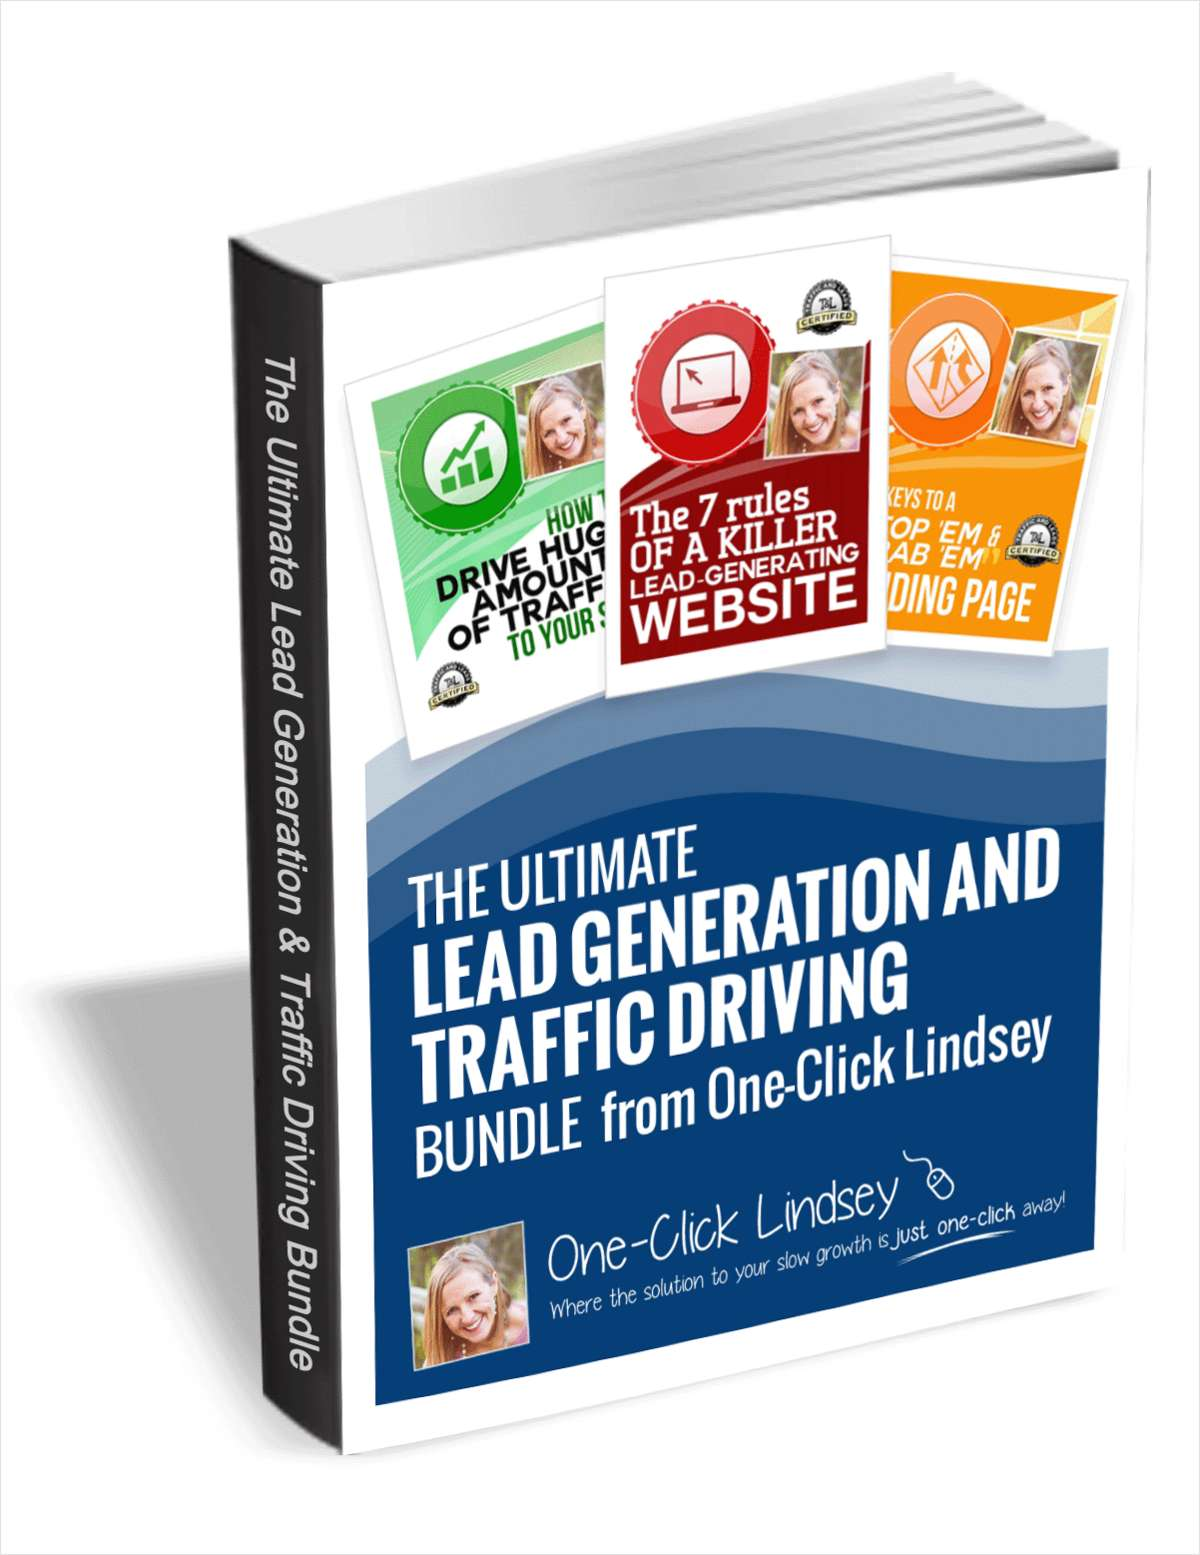 The Ultimate Lead Generation and Traffic Driving Bundle